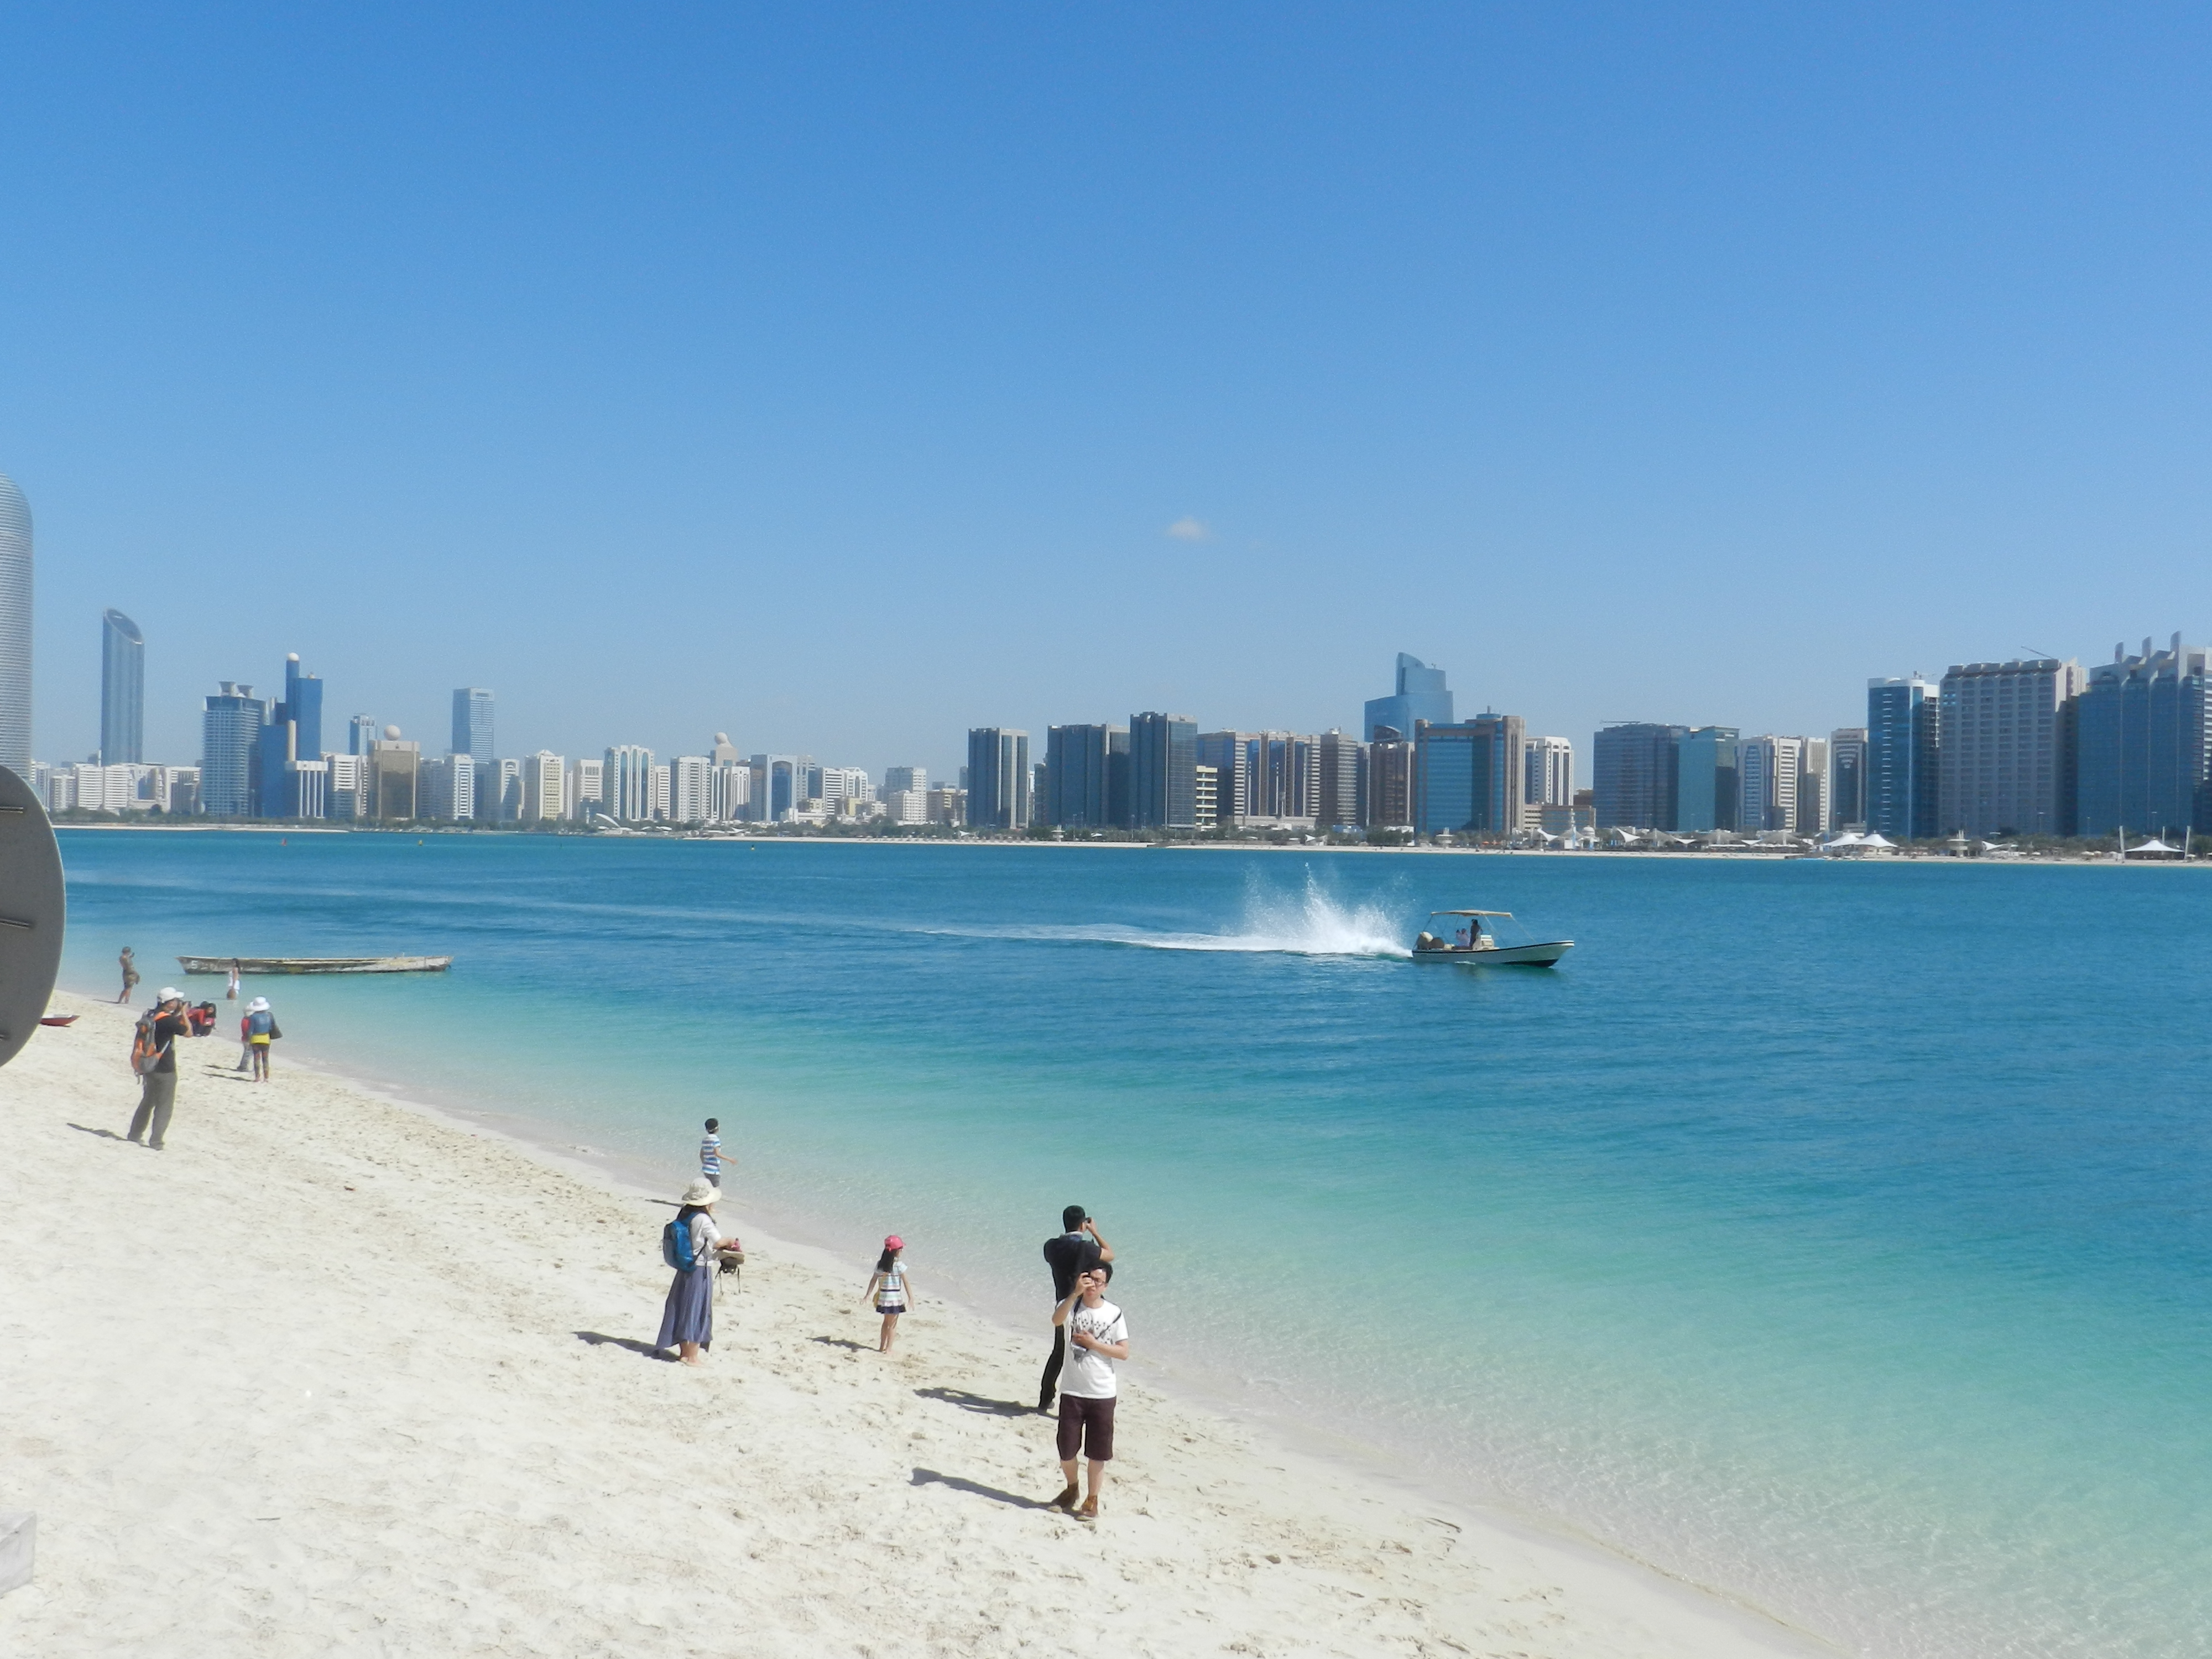 10 TOP-RATED TOURIST ATTRACTIONS IN ABU DHABI